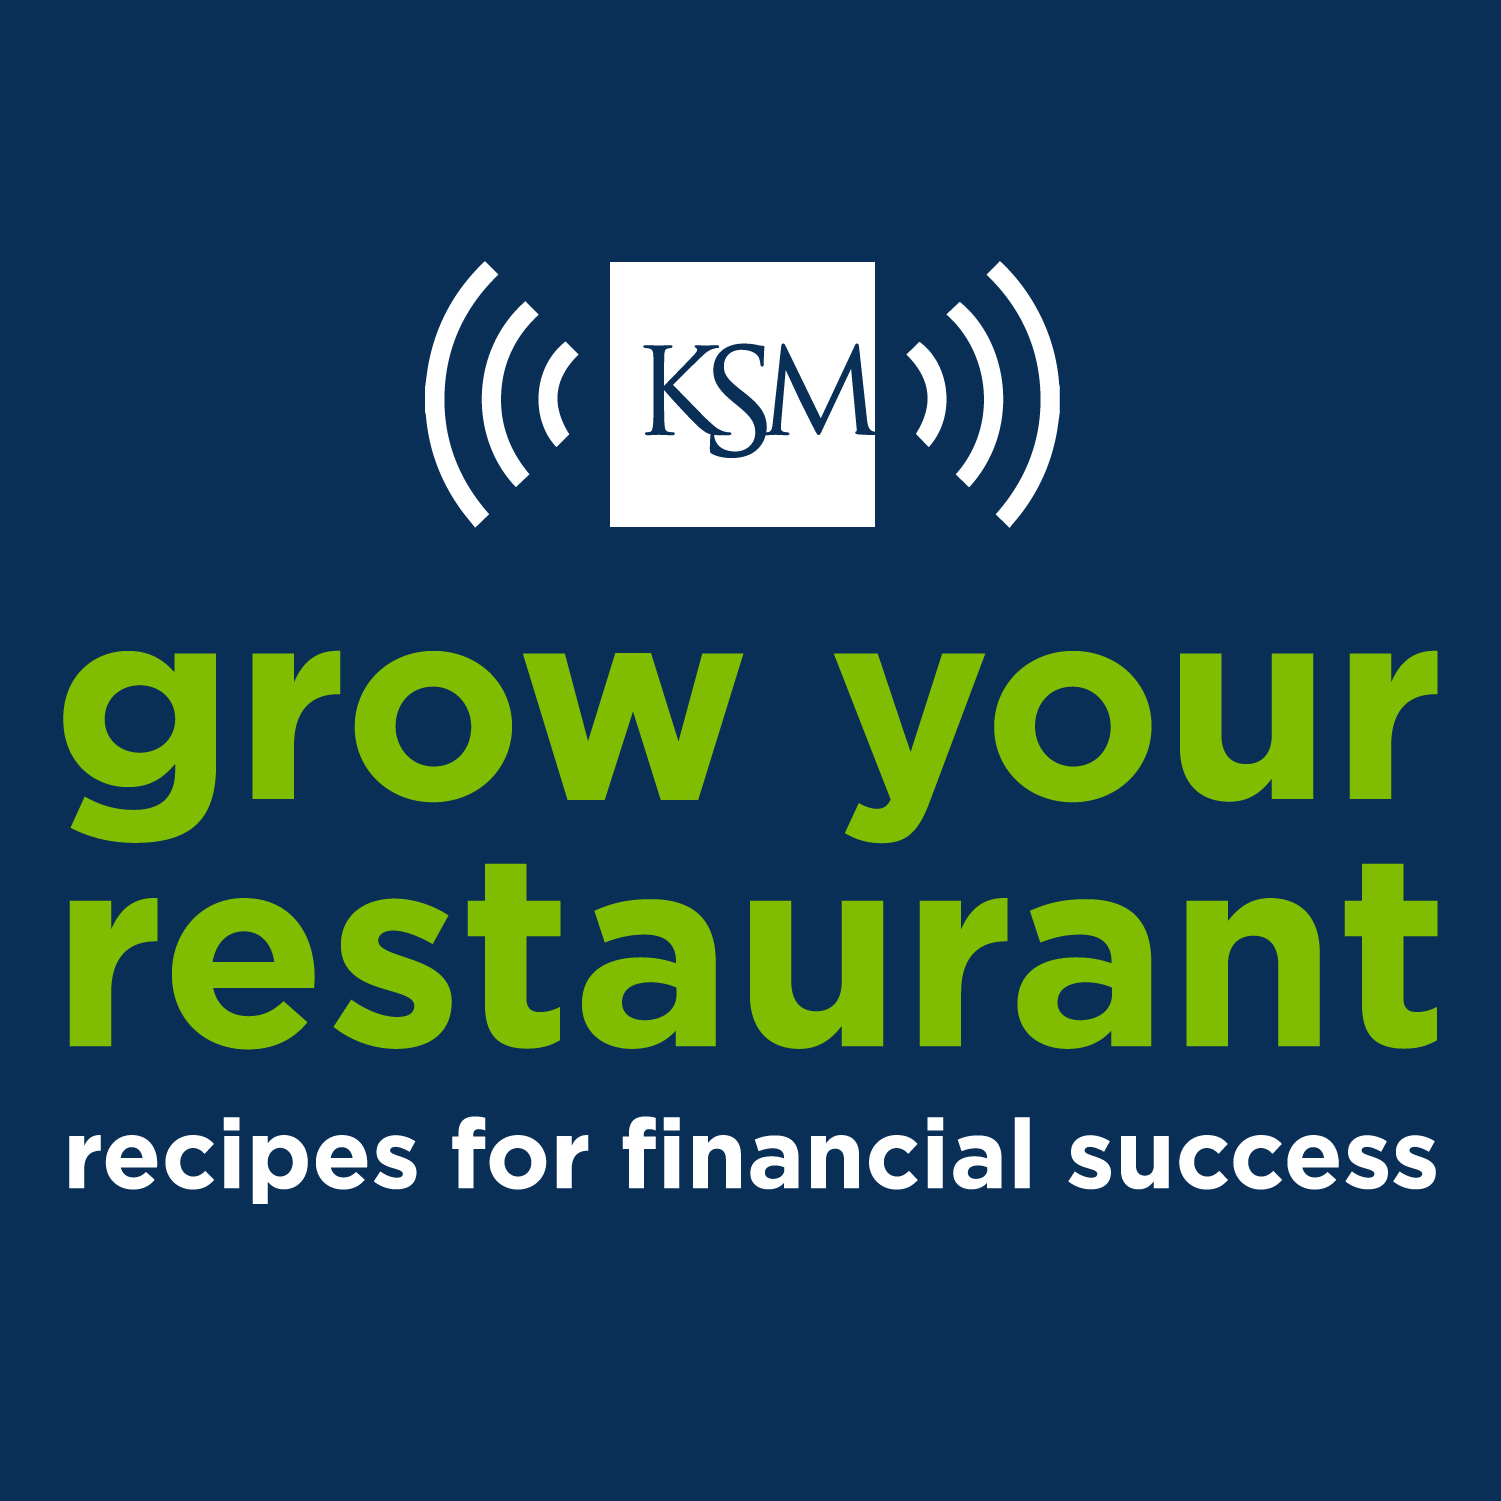 Grow Your Restaurant: Recipes for Financial Success